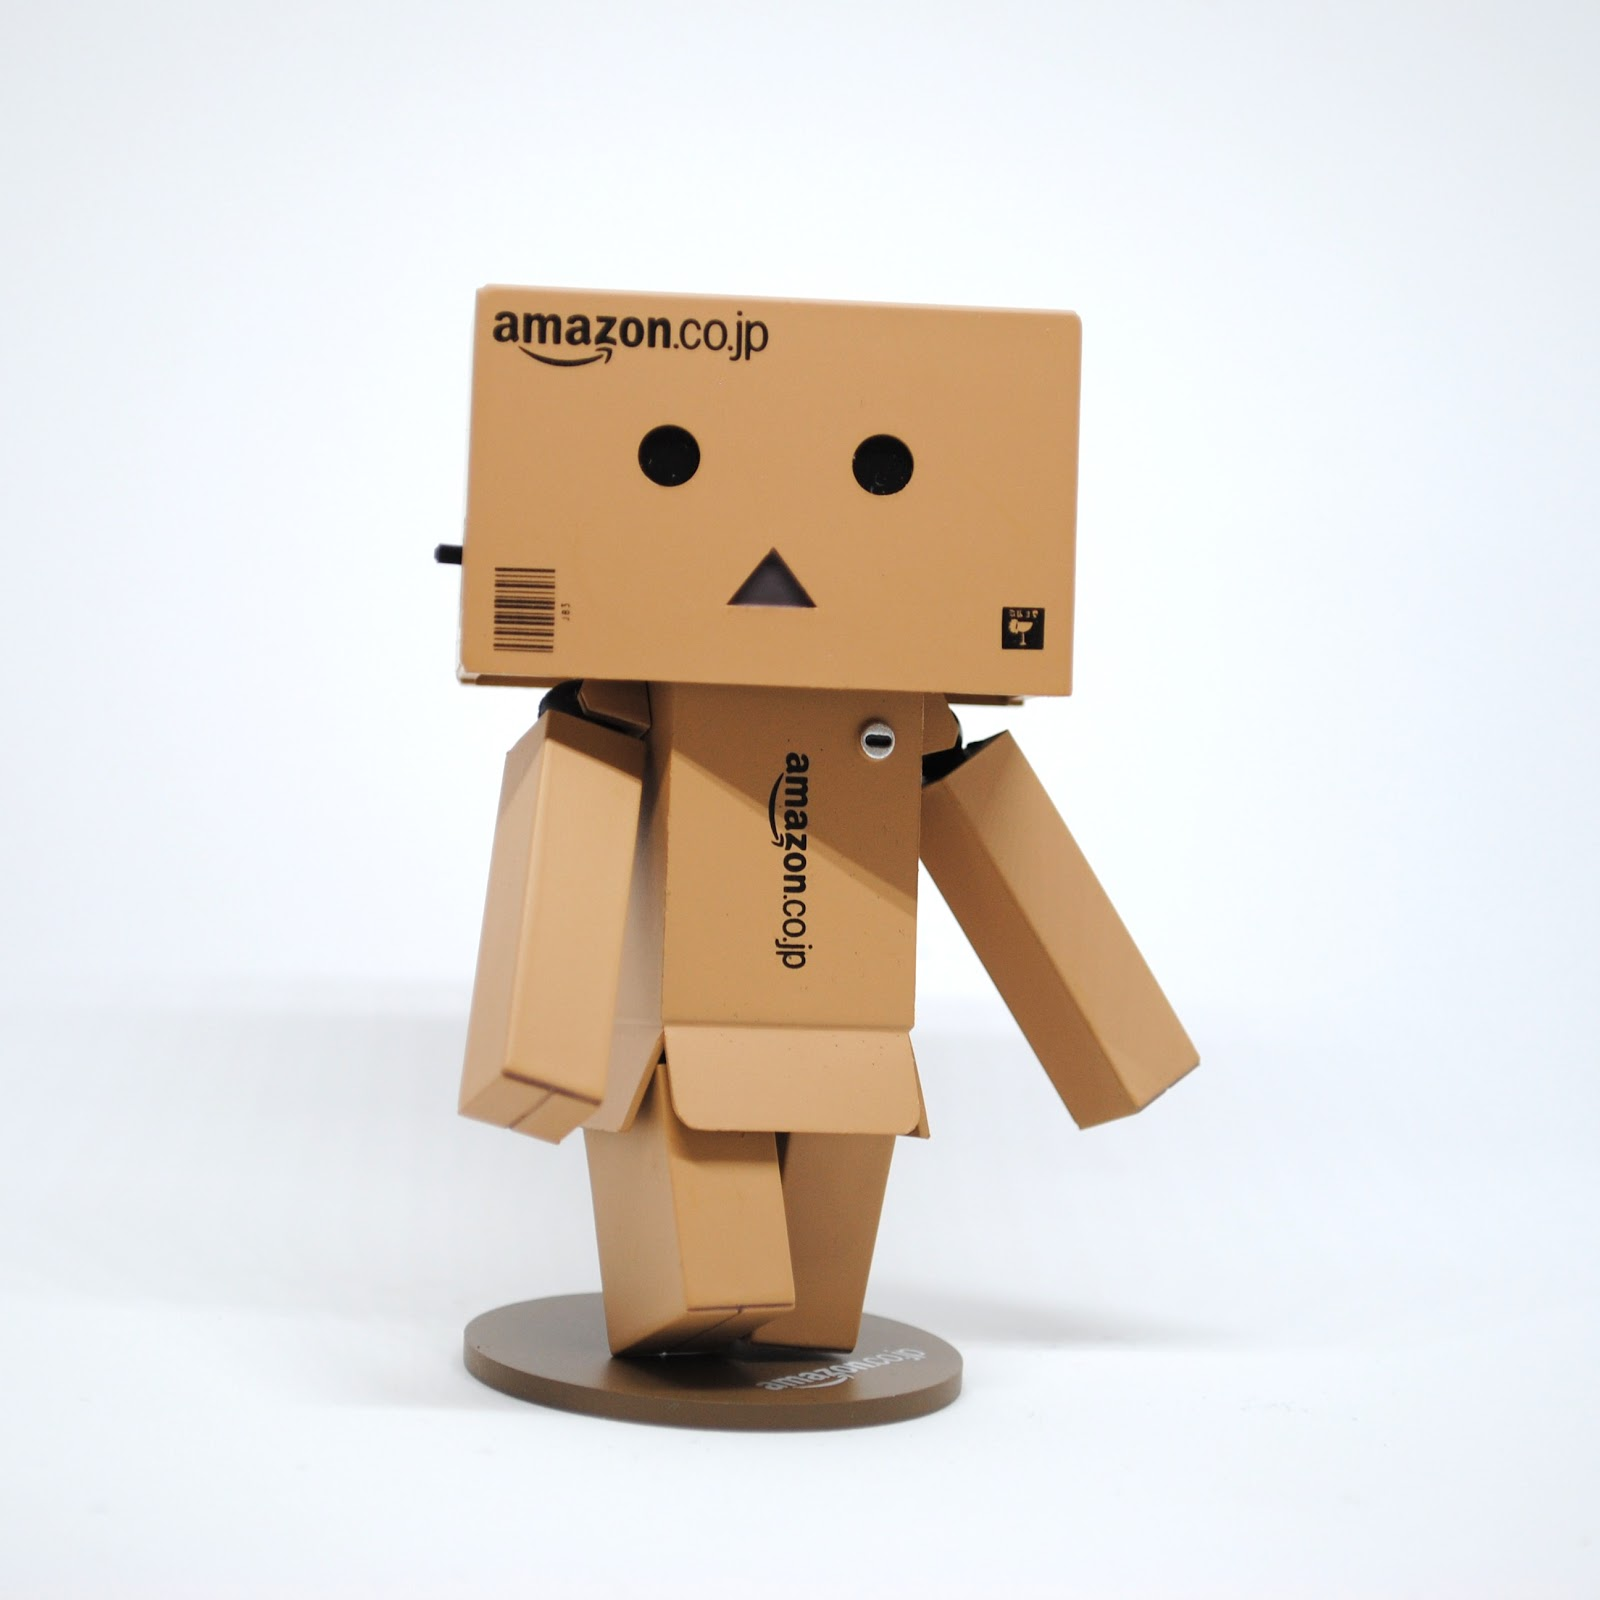 Amazon logo on a box robot.